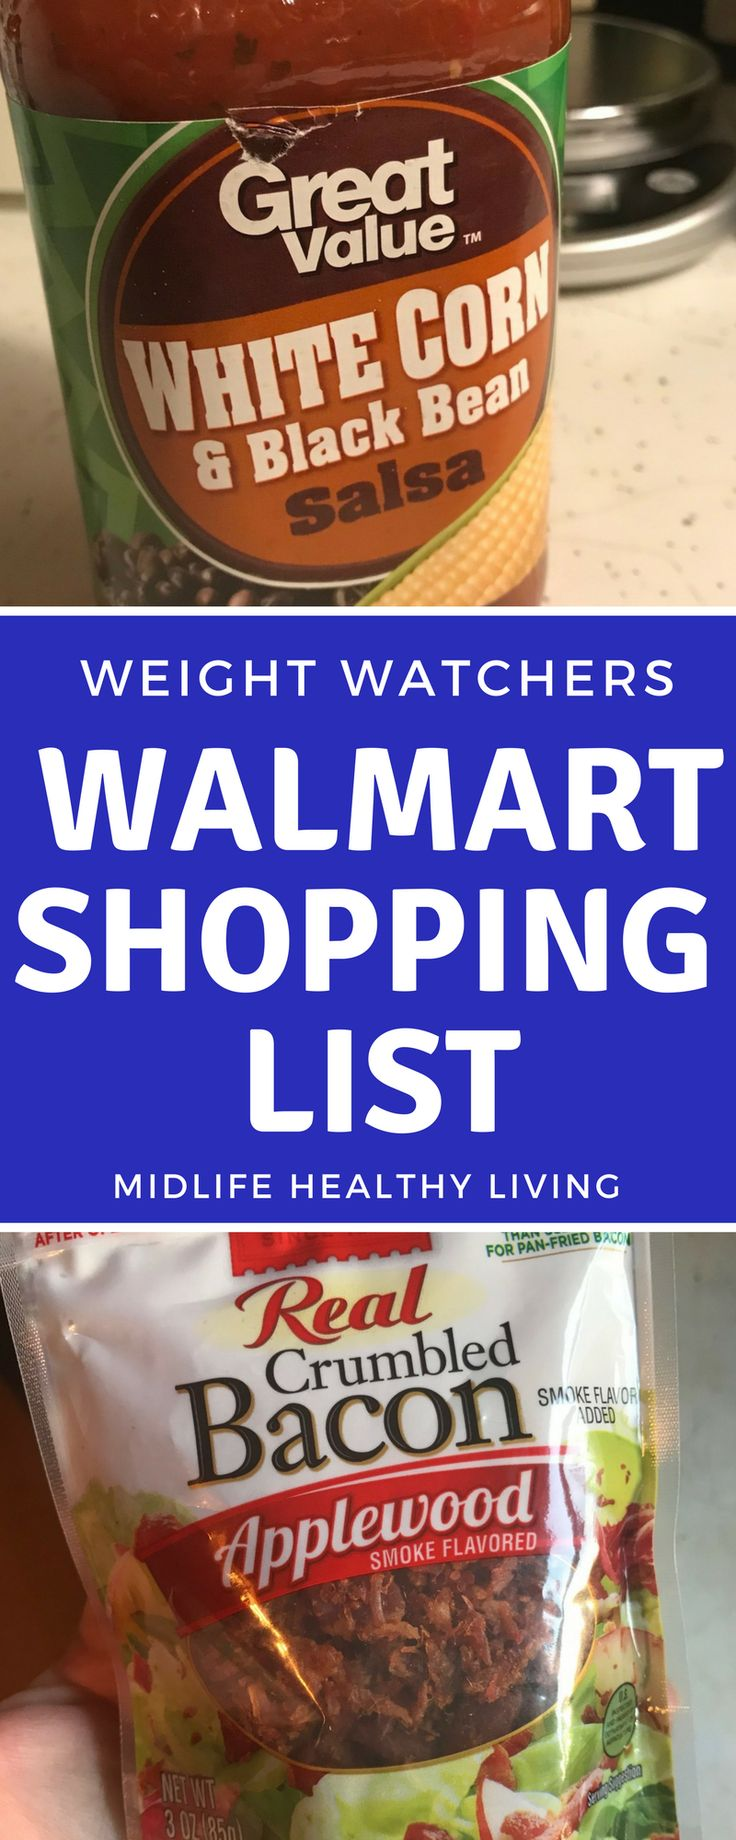 One of the main advertising points for Weight Watchers and especially the new Weight Watchers Freestyle programs is that you can eat anything! That can make shopping even more tricky as it turns out! Figuring out Weight Watchers food to buy from Walmart is easier than ever with this quick and handy list.    via @midlifehealthyliving